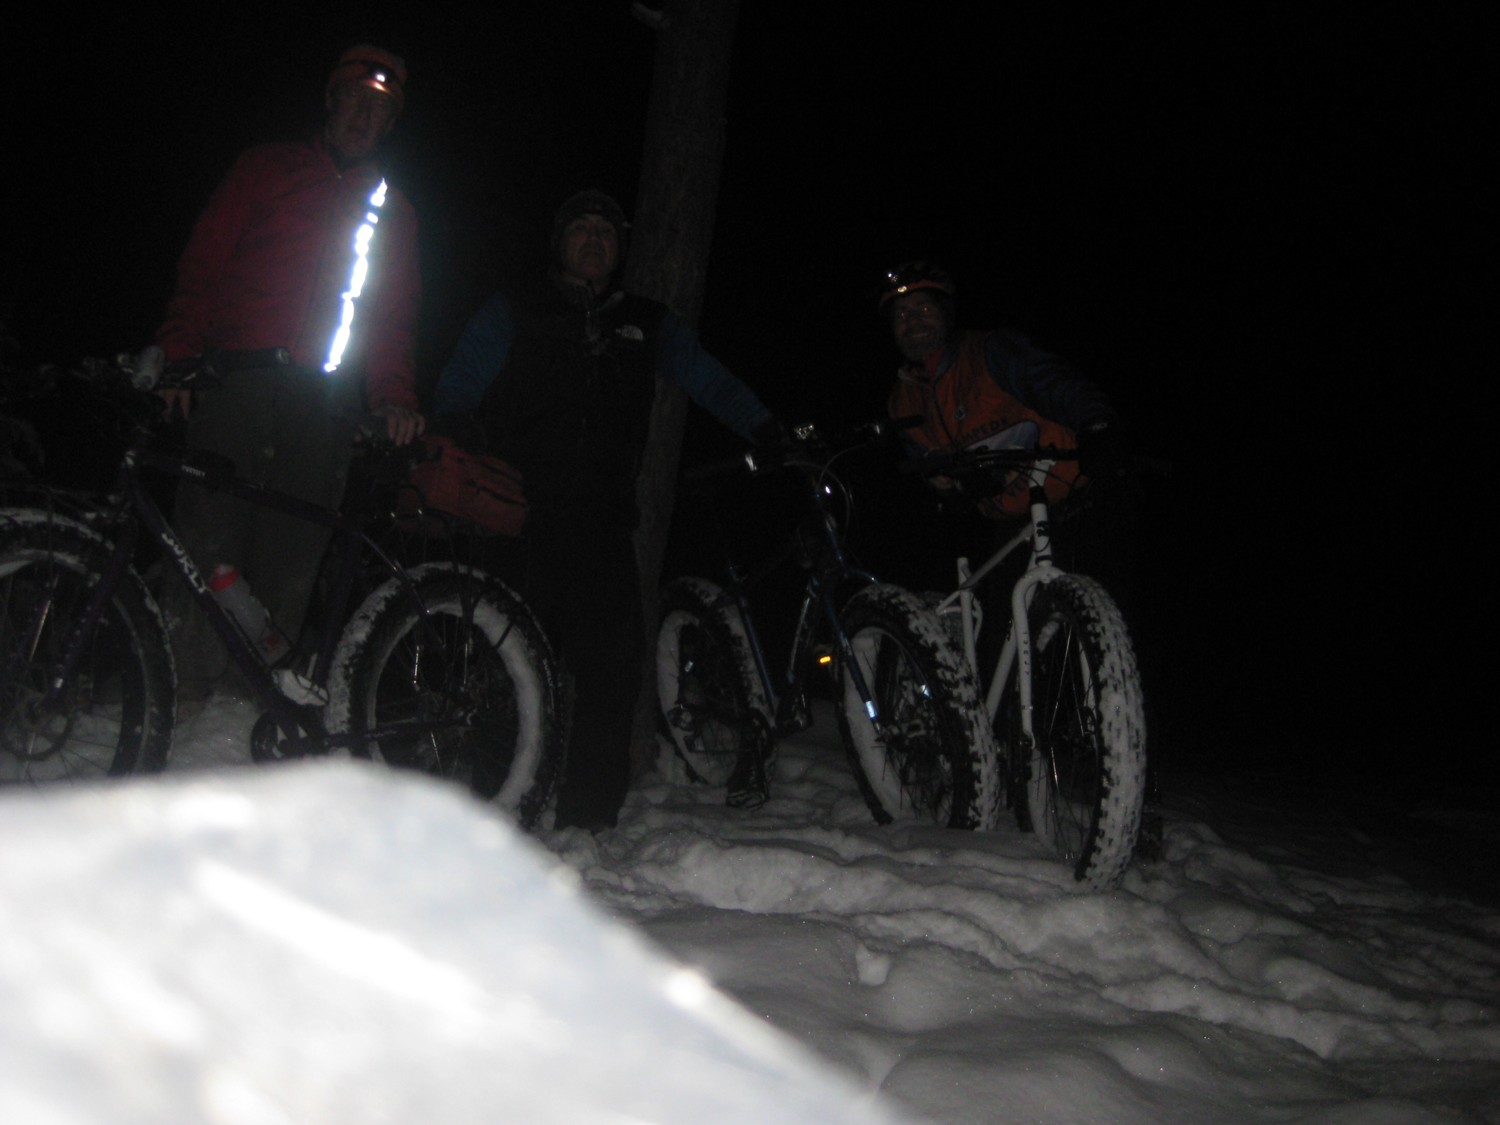 Daily fatbike pic thread-snow-ride-3.jpg